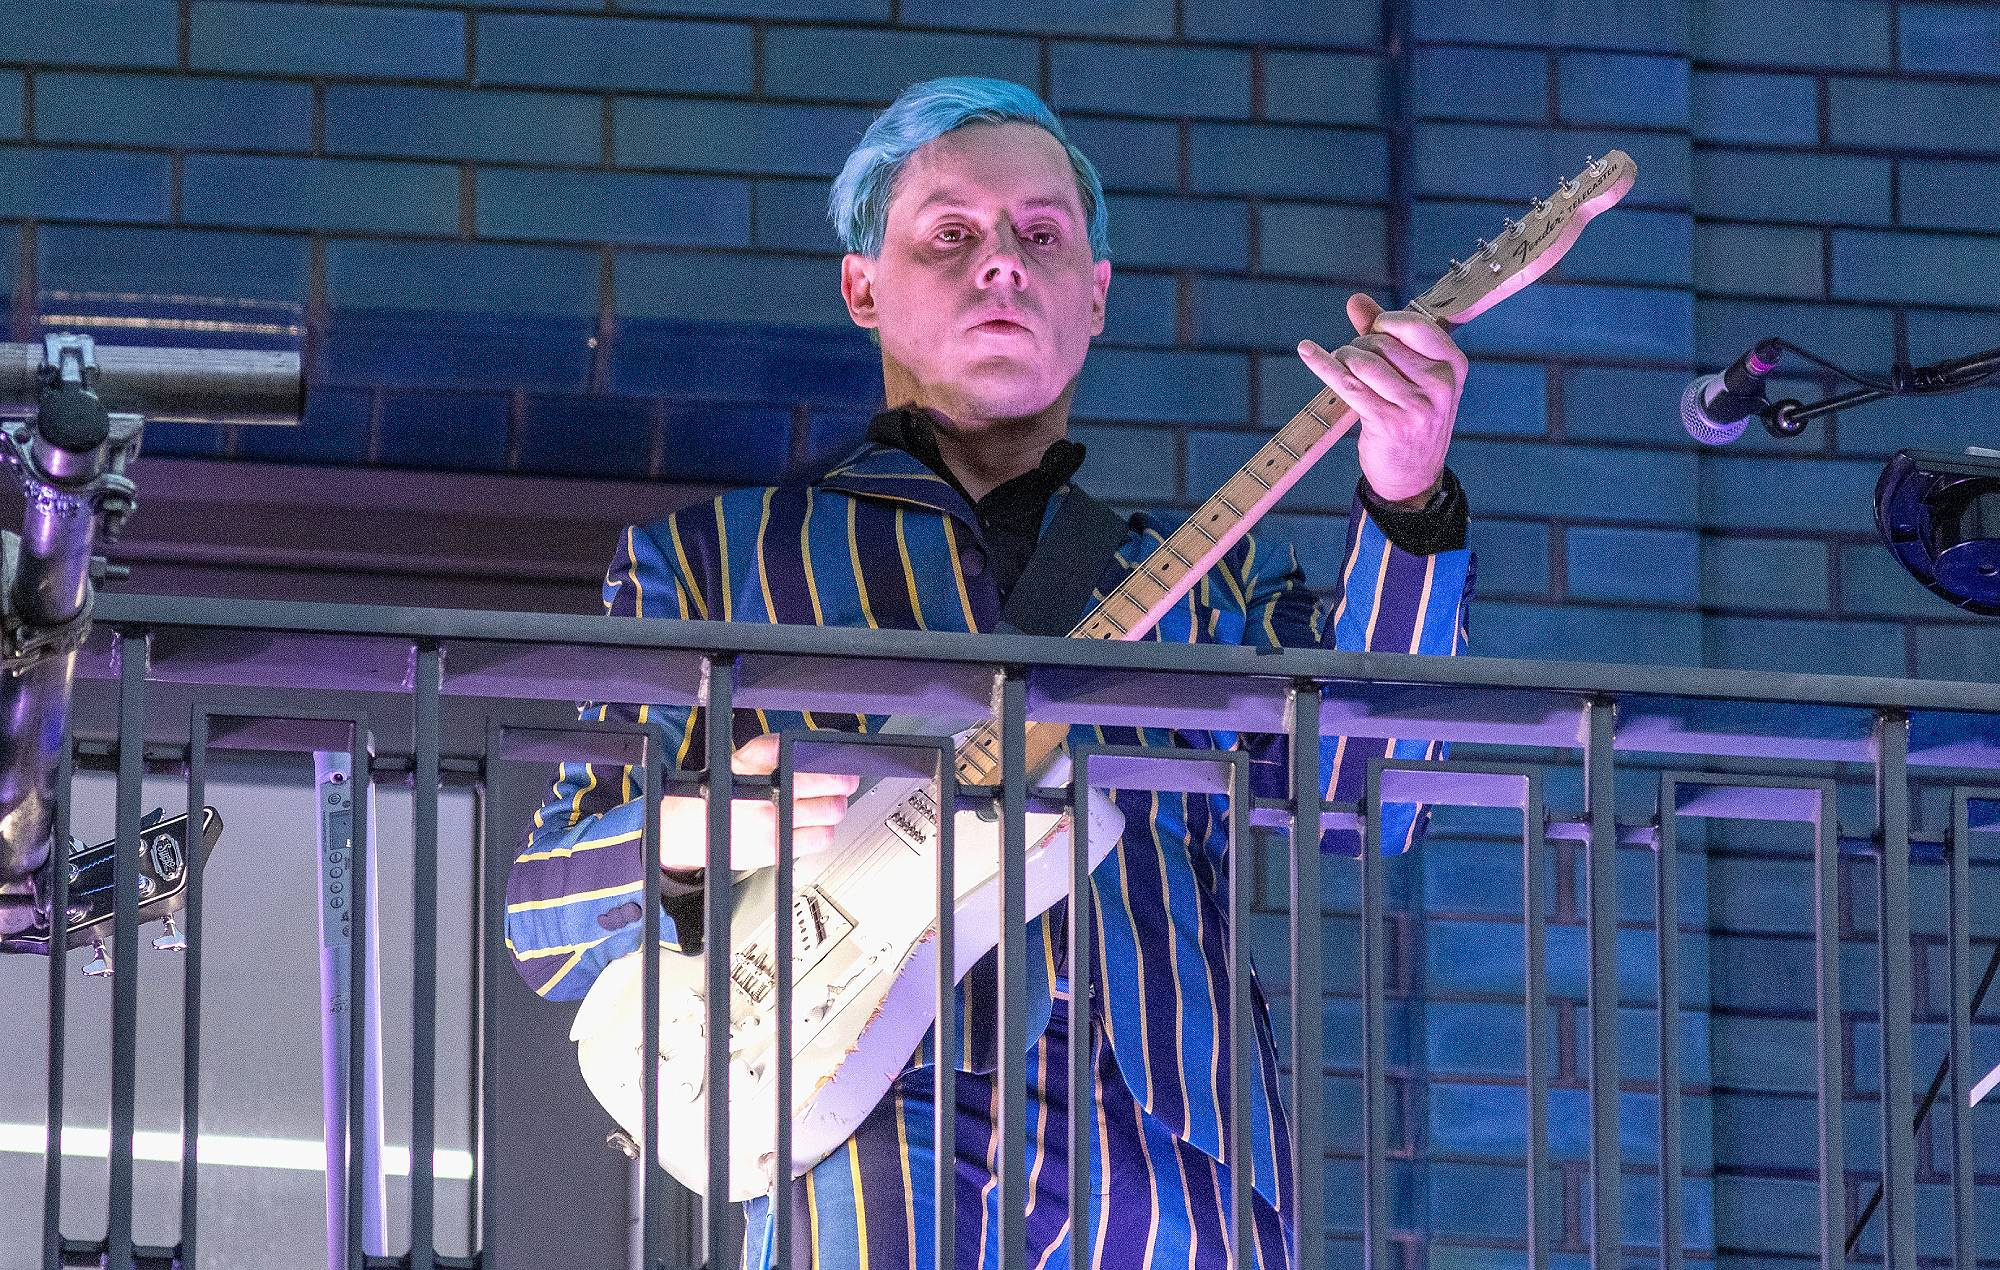 Jack White performs from a balcony on Marshall Street to crowds of people following his in store performance and opening of Third Man Records Store on September 25, 2021 in London, England. (Photo by Jo Hale/Getty Images)